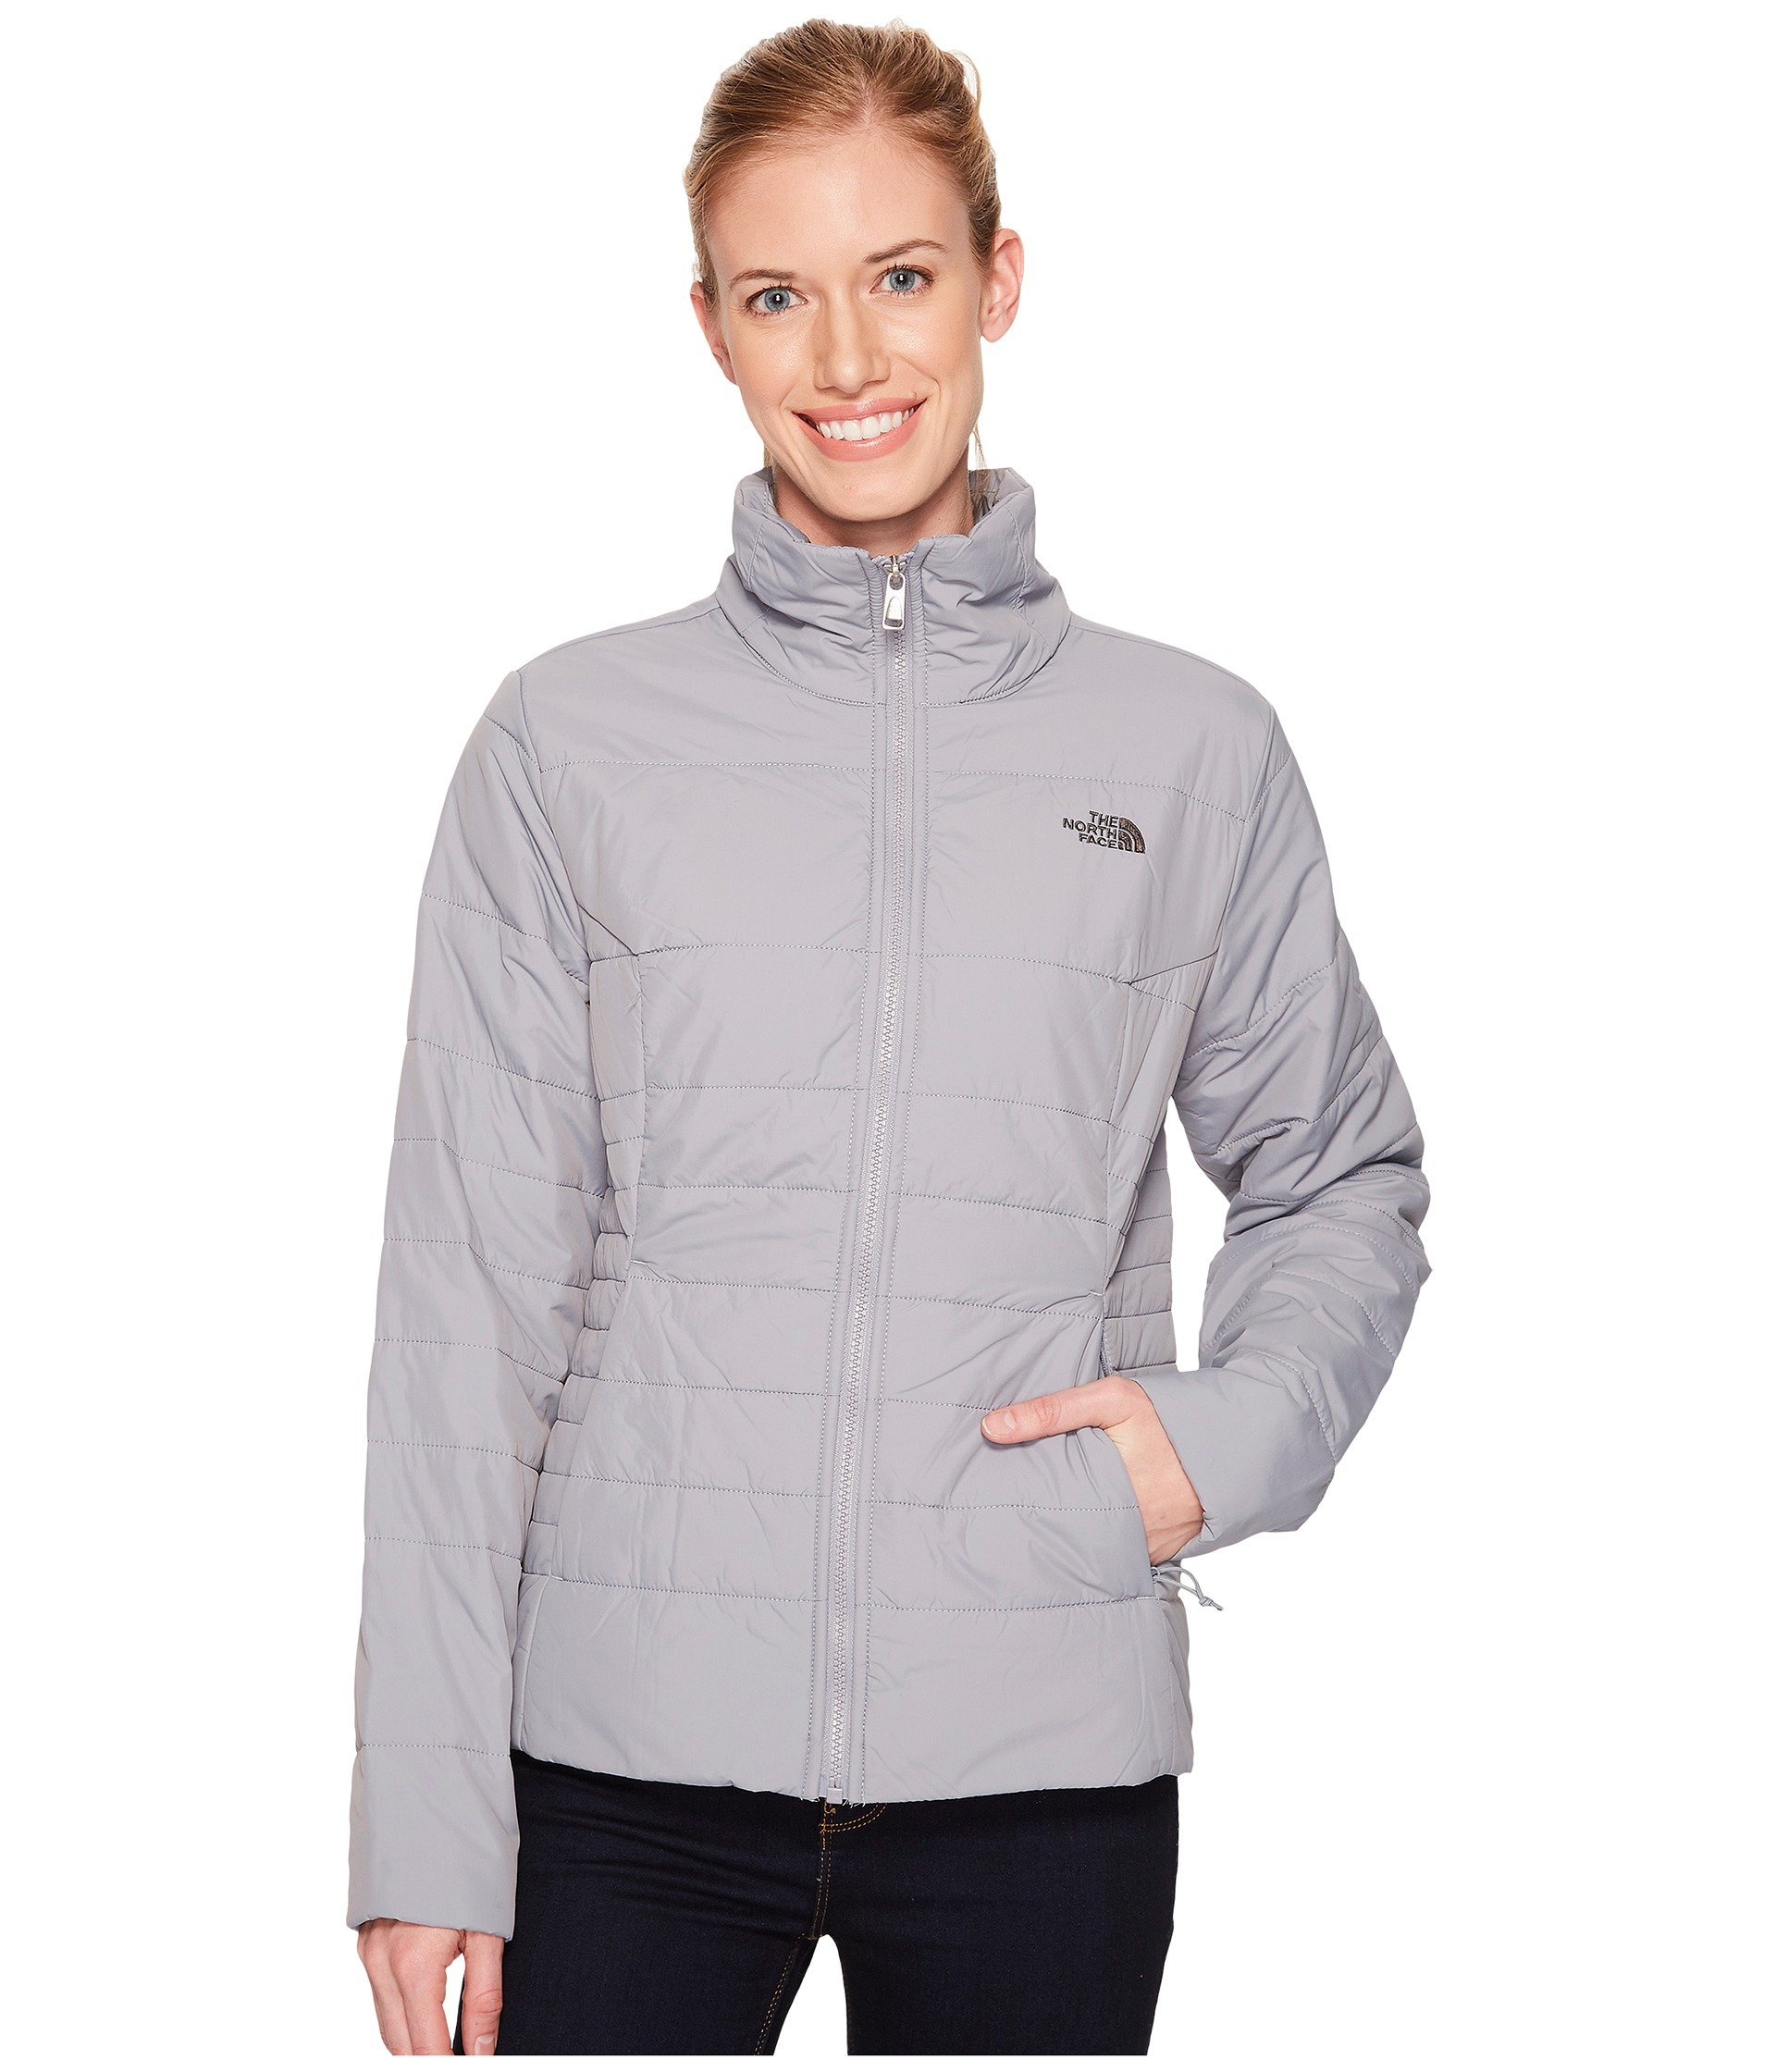 The North Face Women's Harway Jacket - Mid Grey - M (Past Season) by The North Face